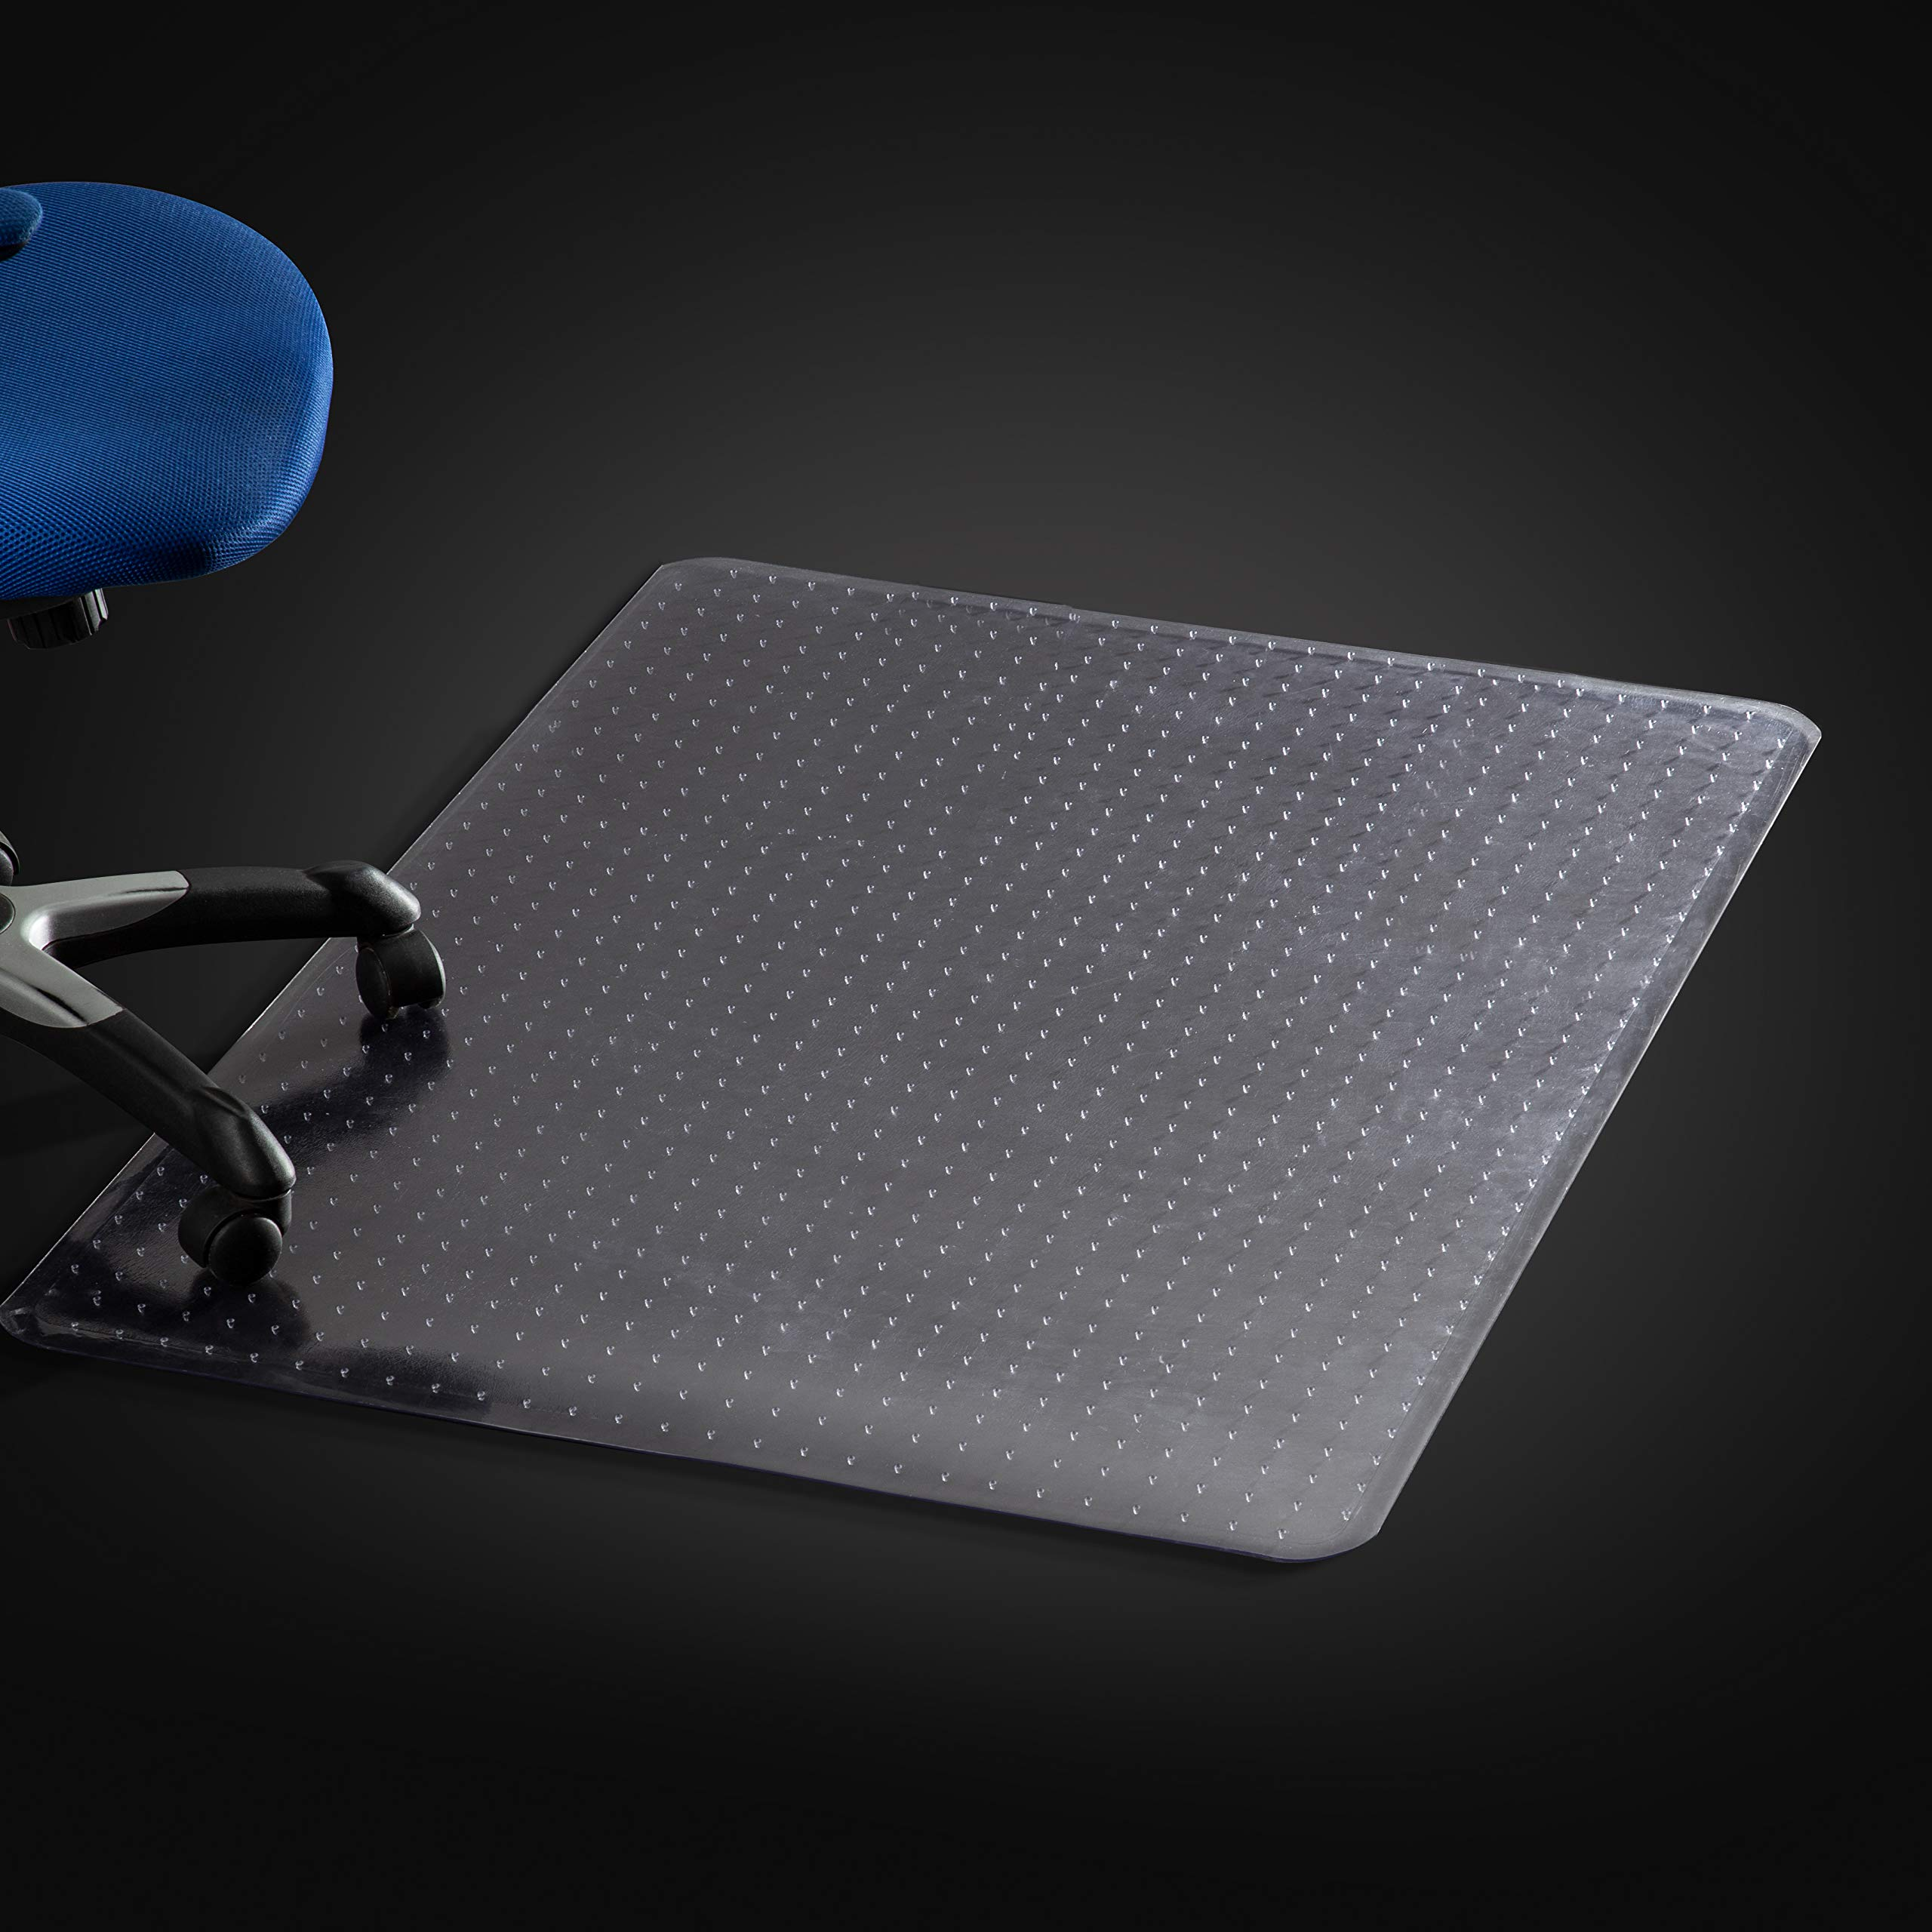 Mastermat Office Chair Mats for Carpeted Floors, Studded Desk Floor Mat, Clear Heavy Duty for Low and Medium Pile Large 36'' X 48'' Thick 5/32'' (0.145) Rectangle, Shipped Flat (1 Pack)